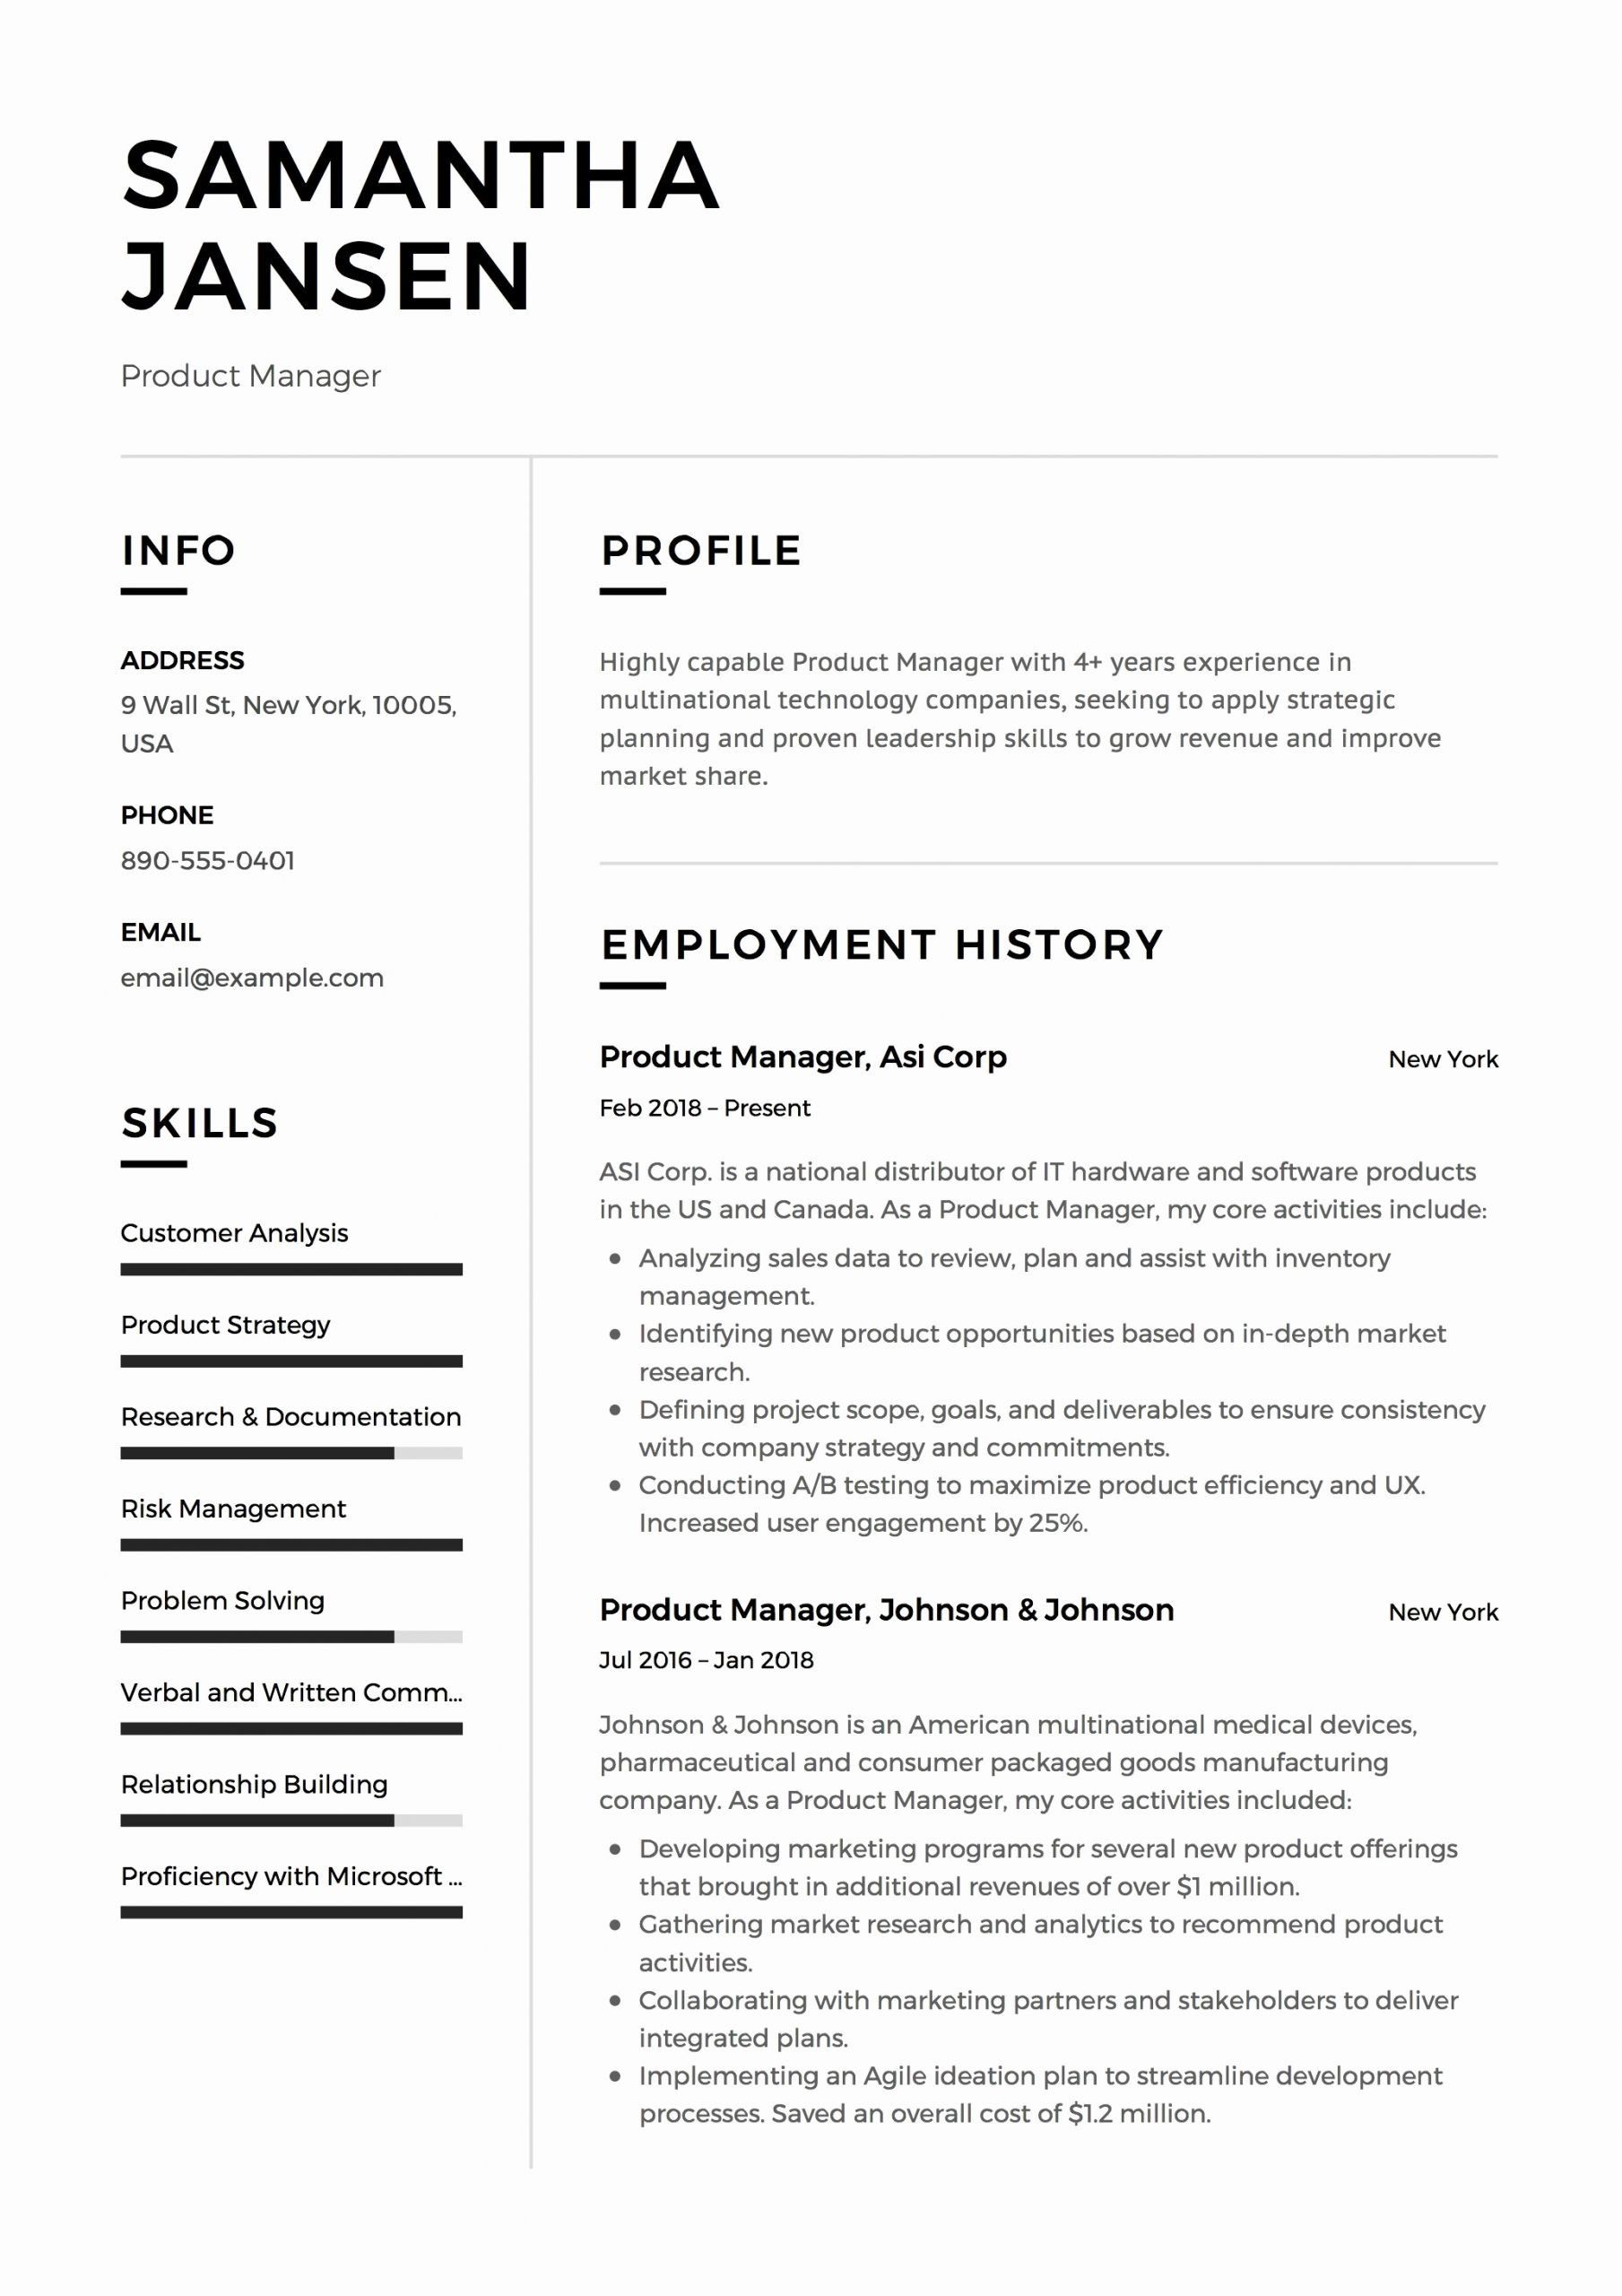 Production Manager Resume Examples Beautiful Product Manager Resume Sample Template Exampl In 2020 Resume Template Examples Job Resume Examples Student Resume Template